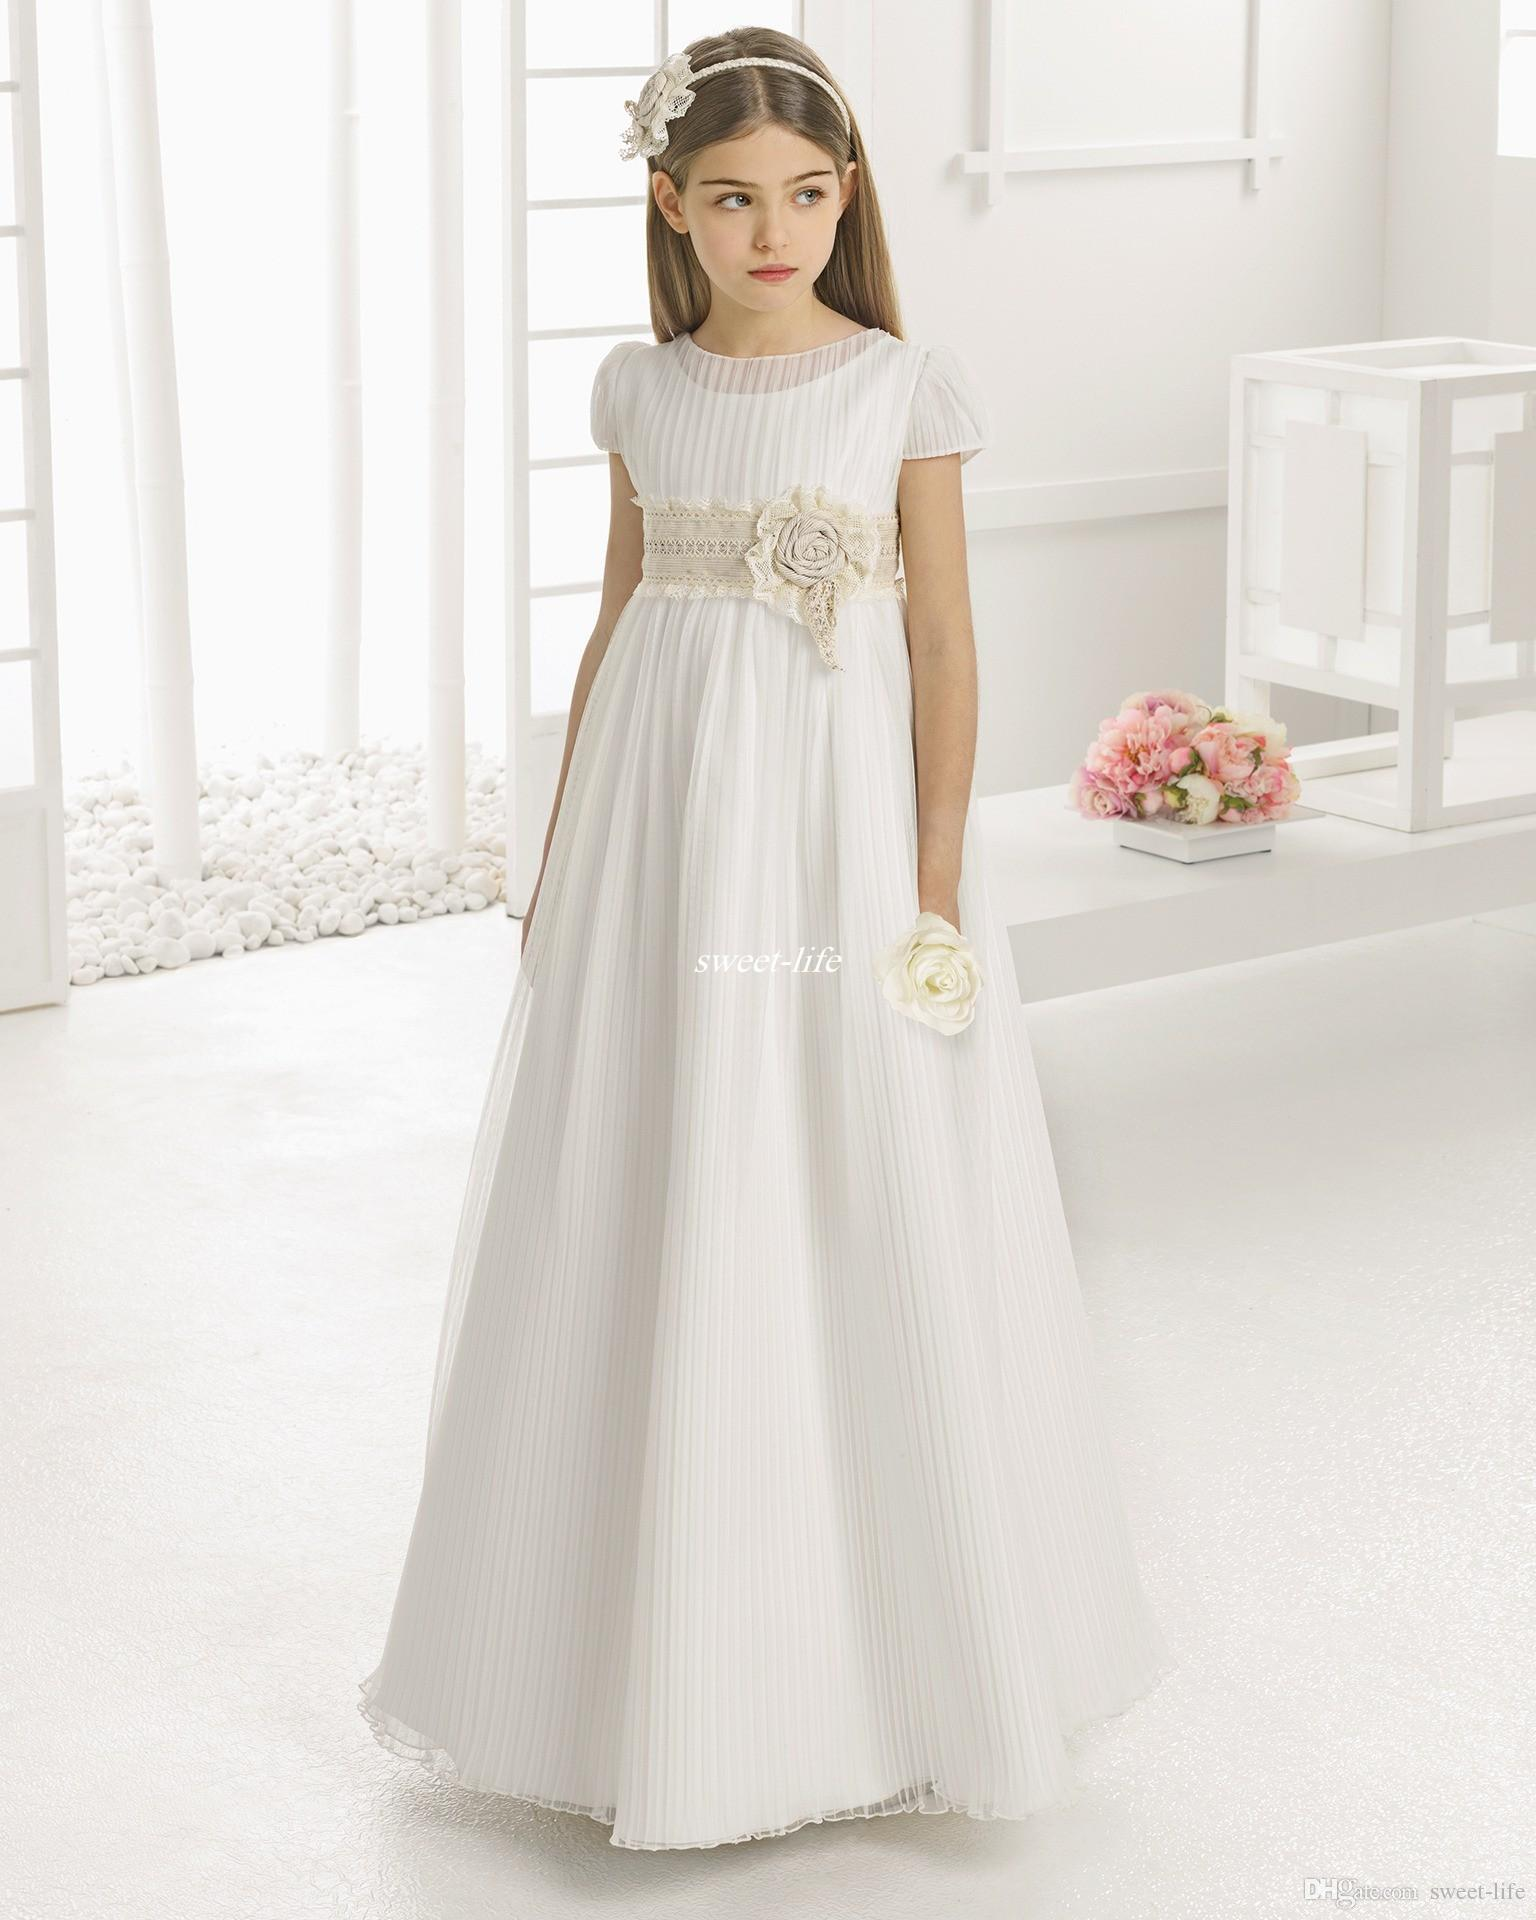 vintage flower girl dresses for wedding empire waist short